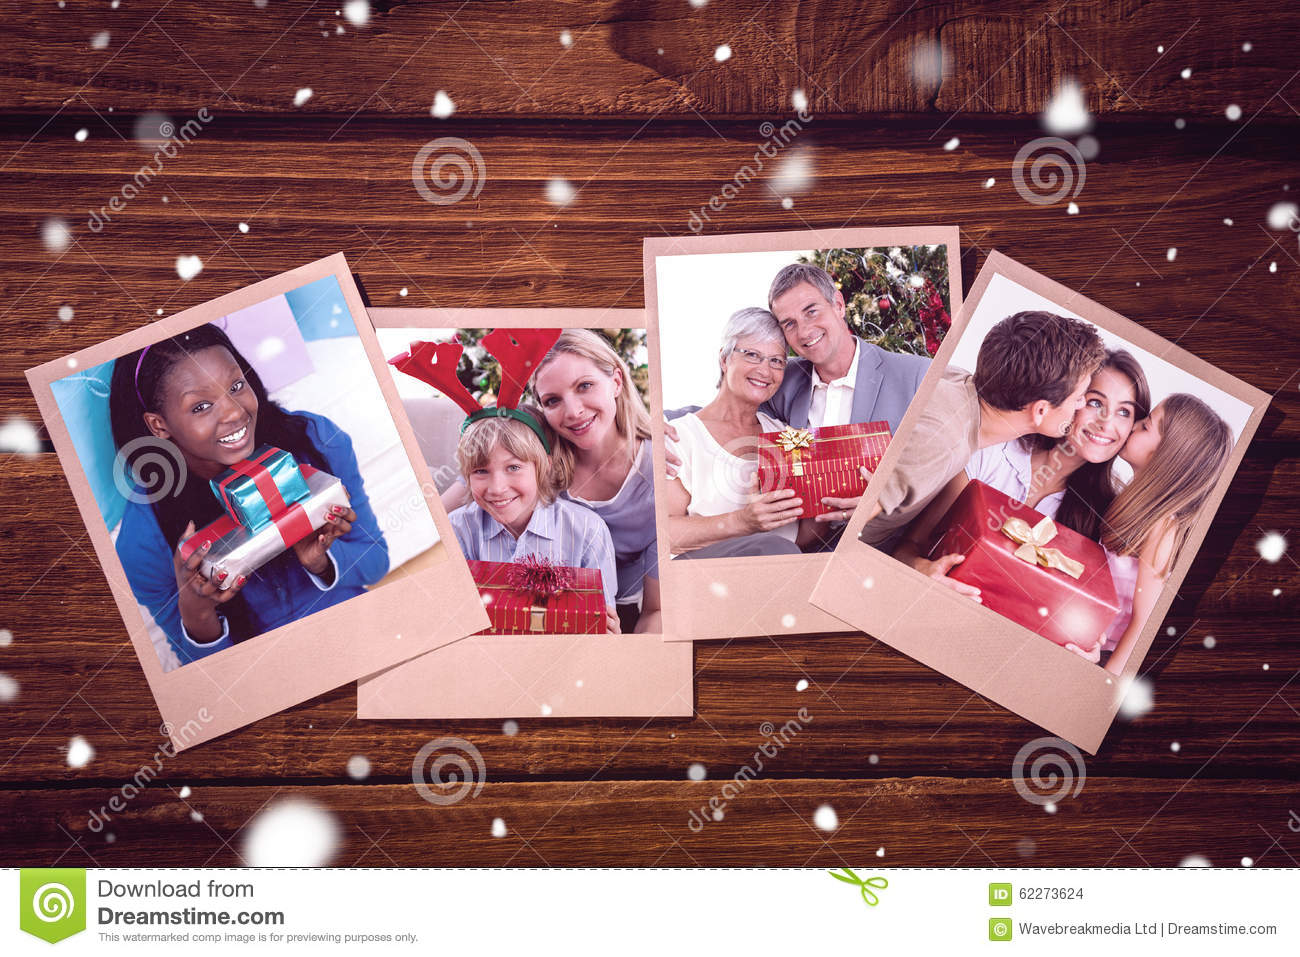 Composite image of cheerful woman holding a present sitting on the floor